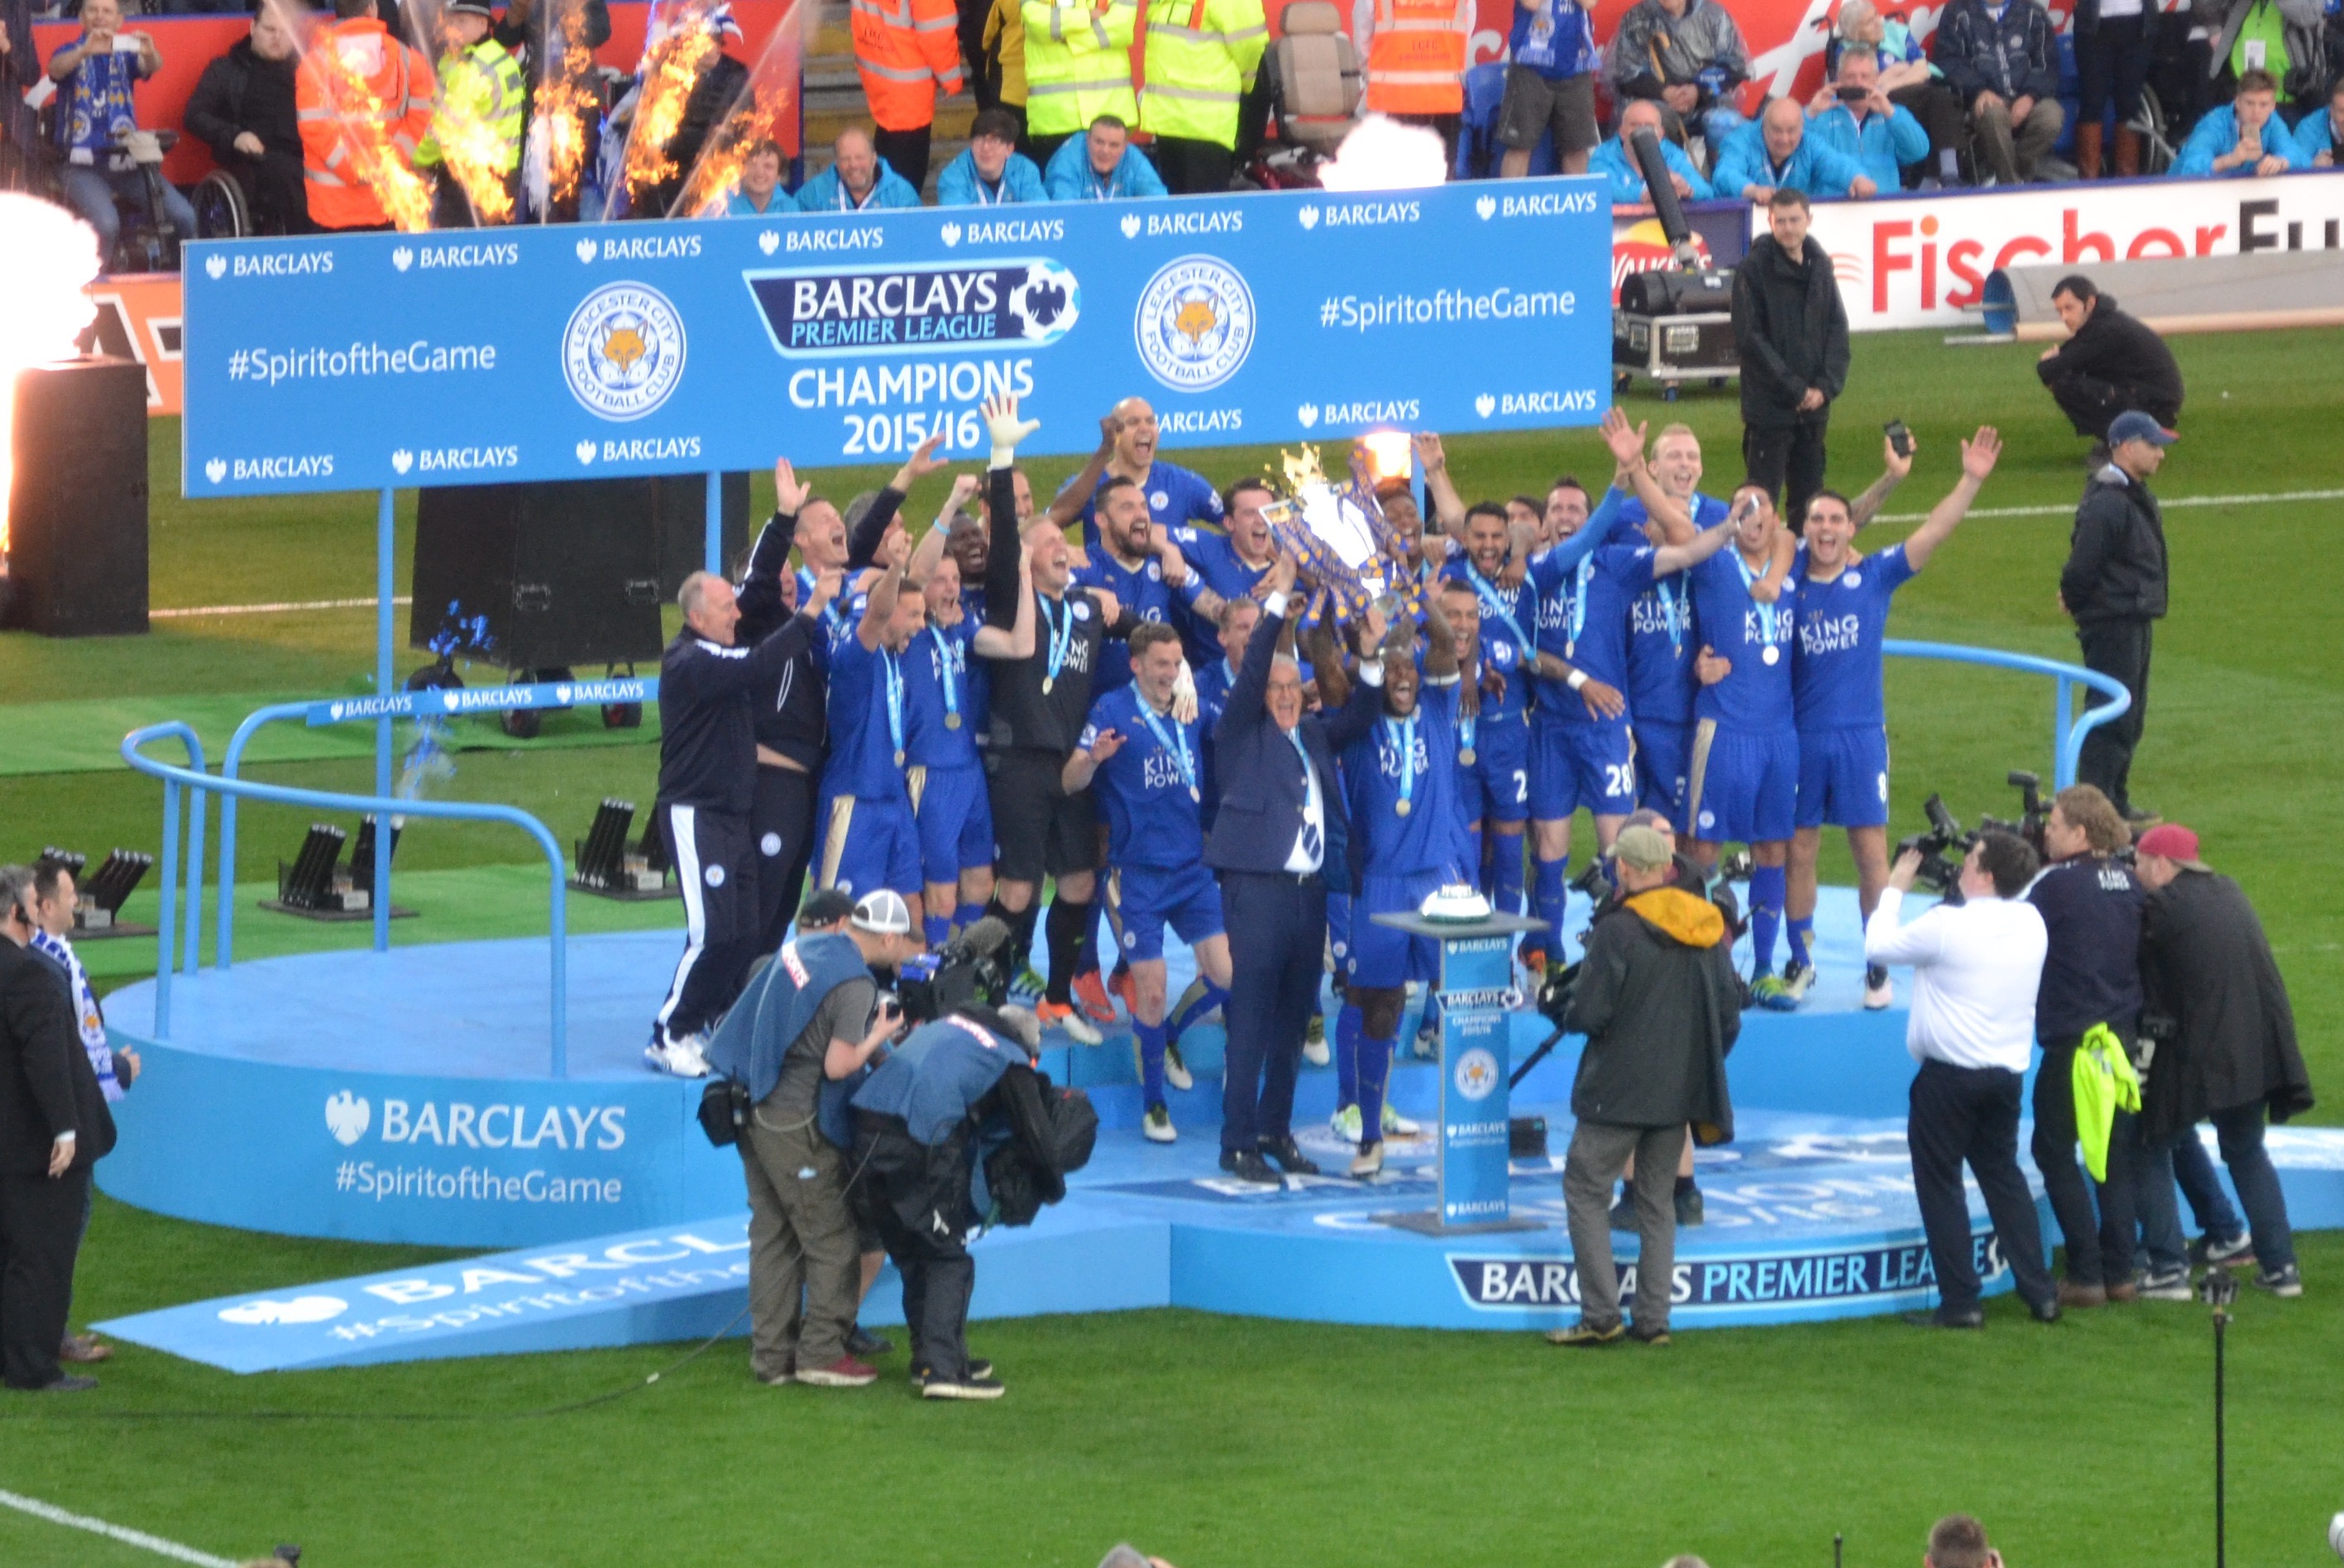 File:LCFC lift the Premier League Trophy (26943755296) (cropped).jpg -  Wikimedia Commons